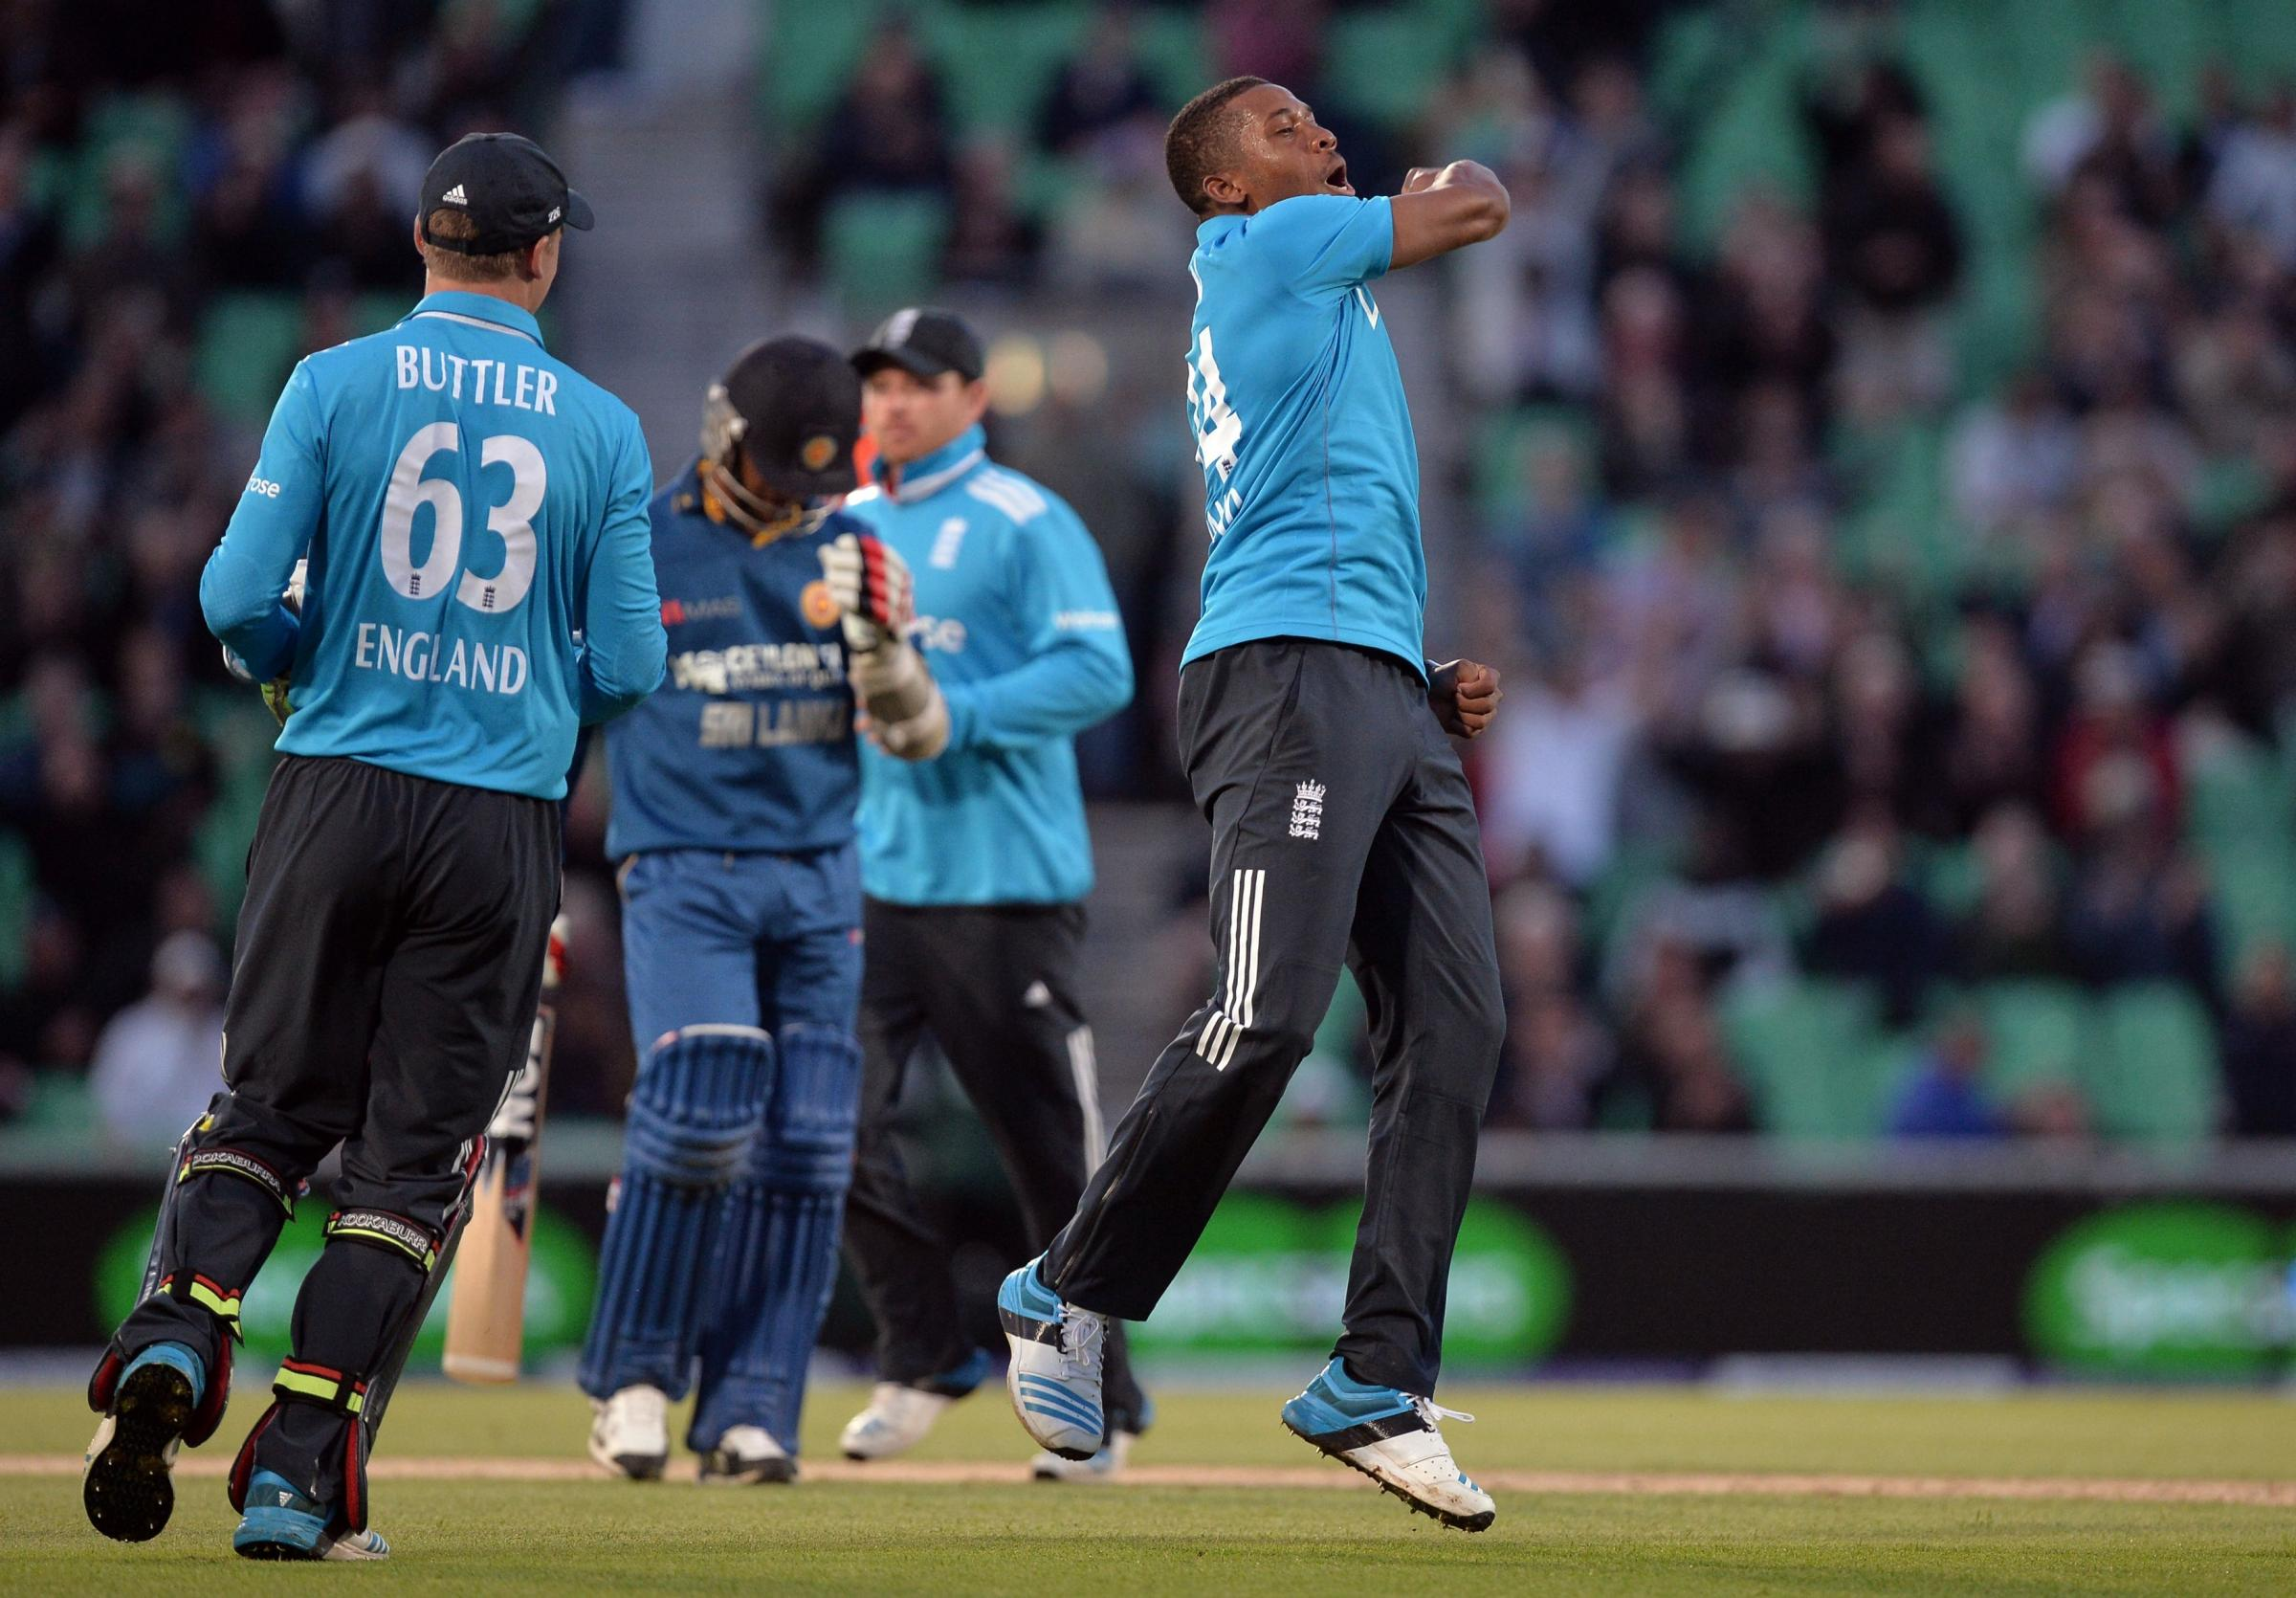 Chris Jordan plays for England today against Sri Lanka